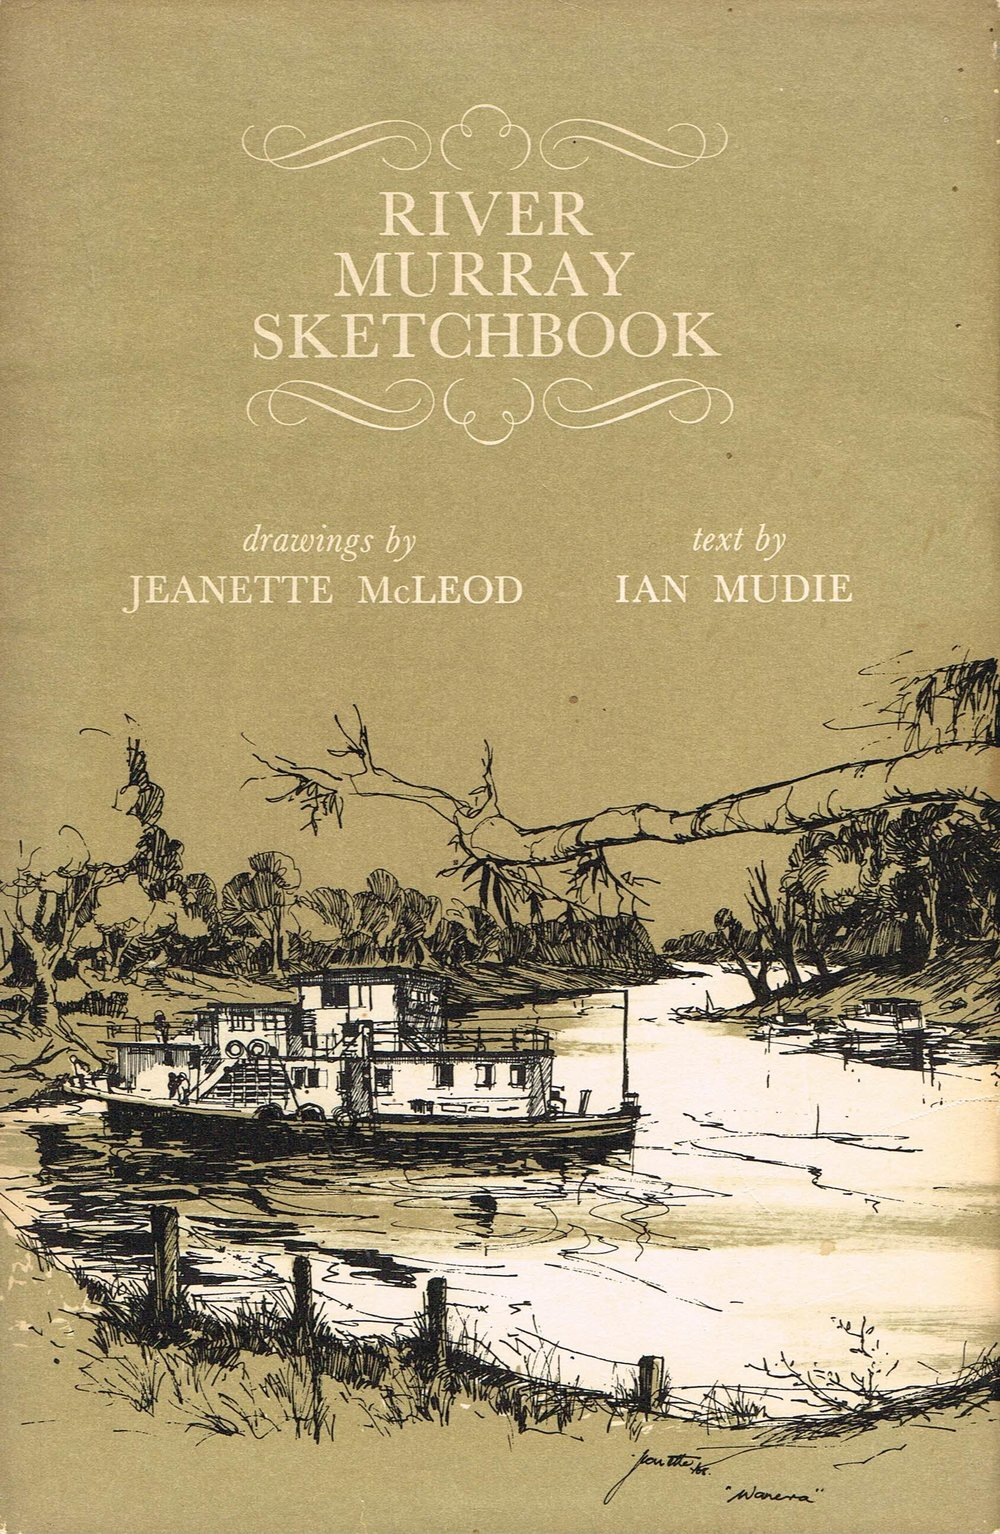 River Murray Sketchbook  Drawings by Jeanette McLeod, text by Ian Mudie